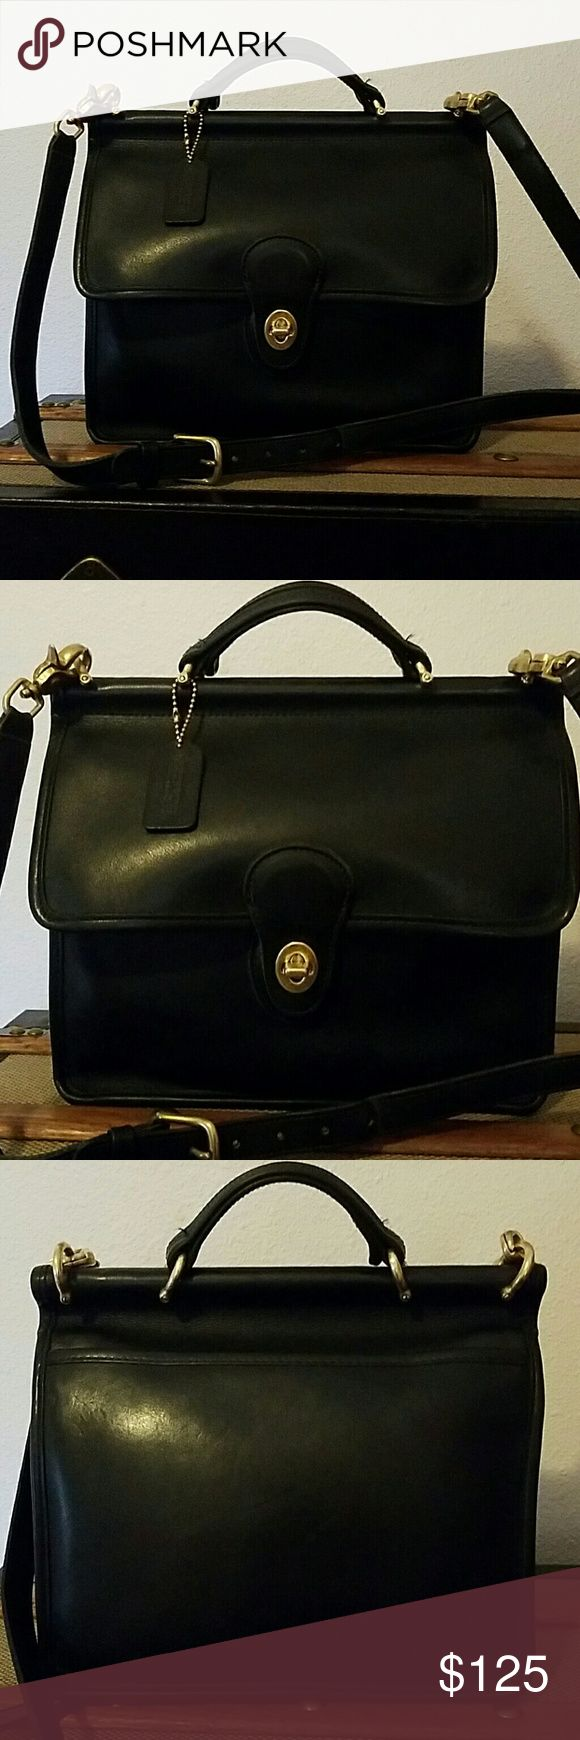 Coach Willis messenger satchel. Glove leather. Coach Willis messenger satchel/crossbody bag.  With hang tag and original straps.   Glove leather, made in the USA.  Excellent condition.  No rips tears or scuffs in the leather.  Brass hardware  is shiny with minimal wear.  Turn lock closure.  Back slip pocket interior zip pocket and front compartment.  Great timeless style.  Ask any questions.   Open to offers Coach Bags Crossbody Bags